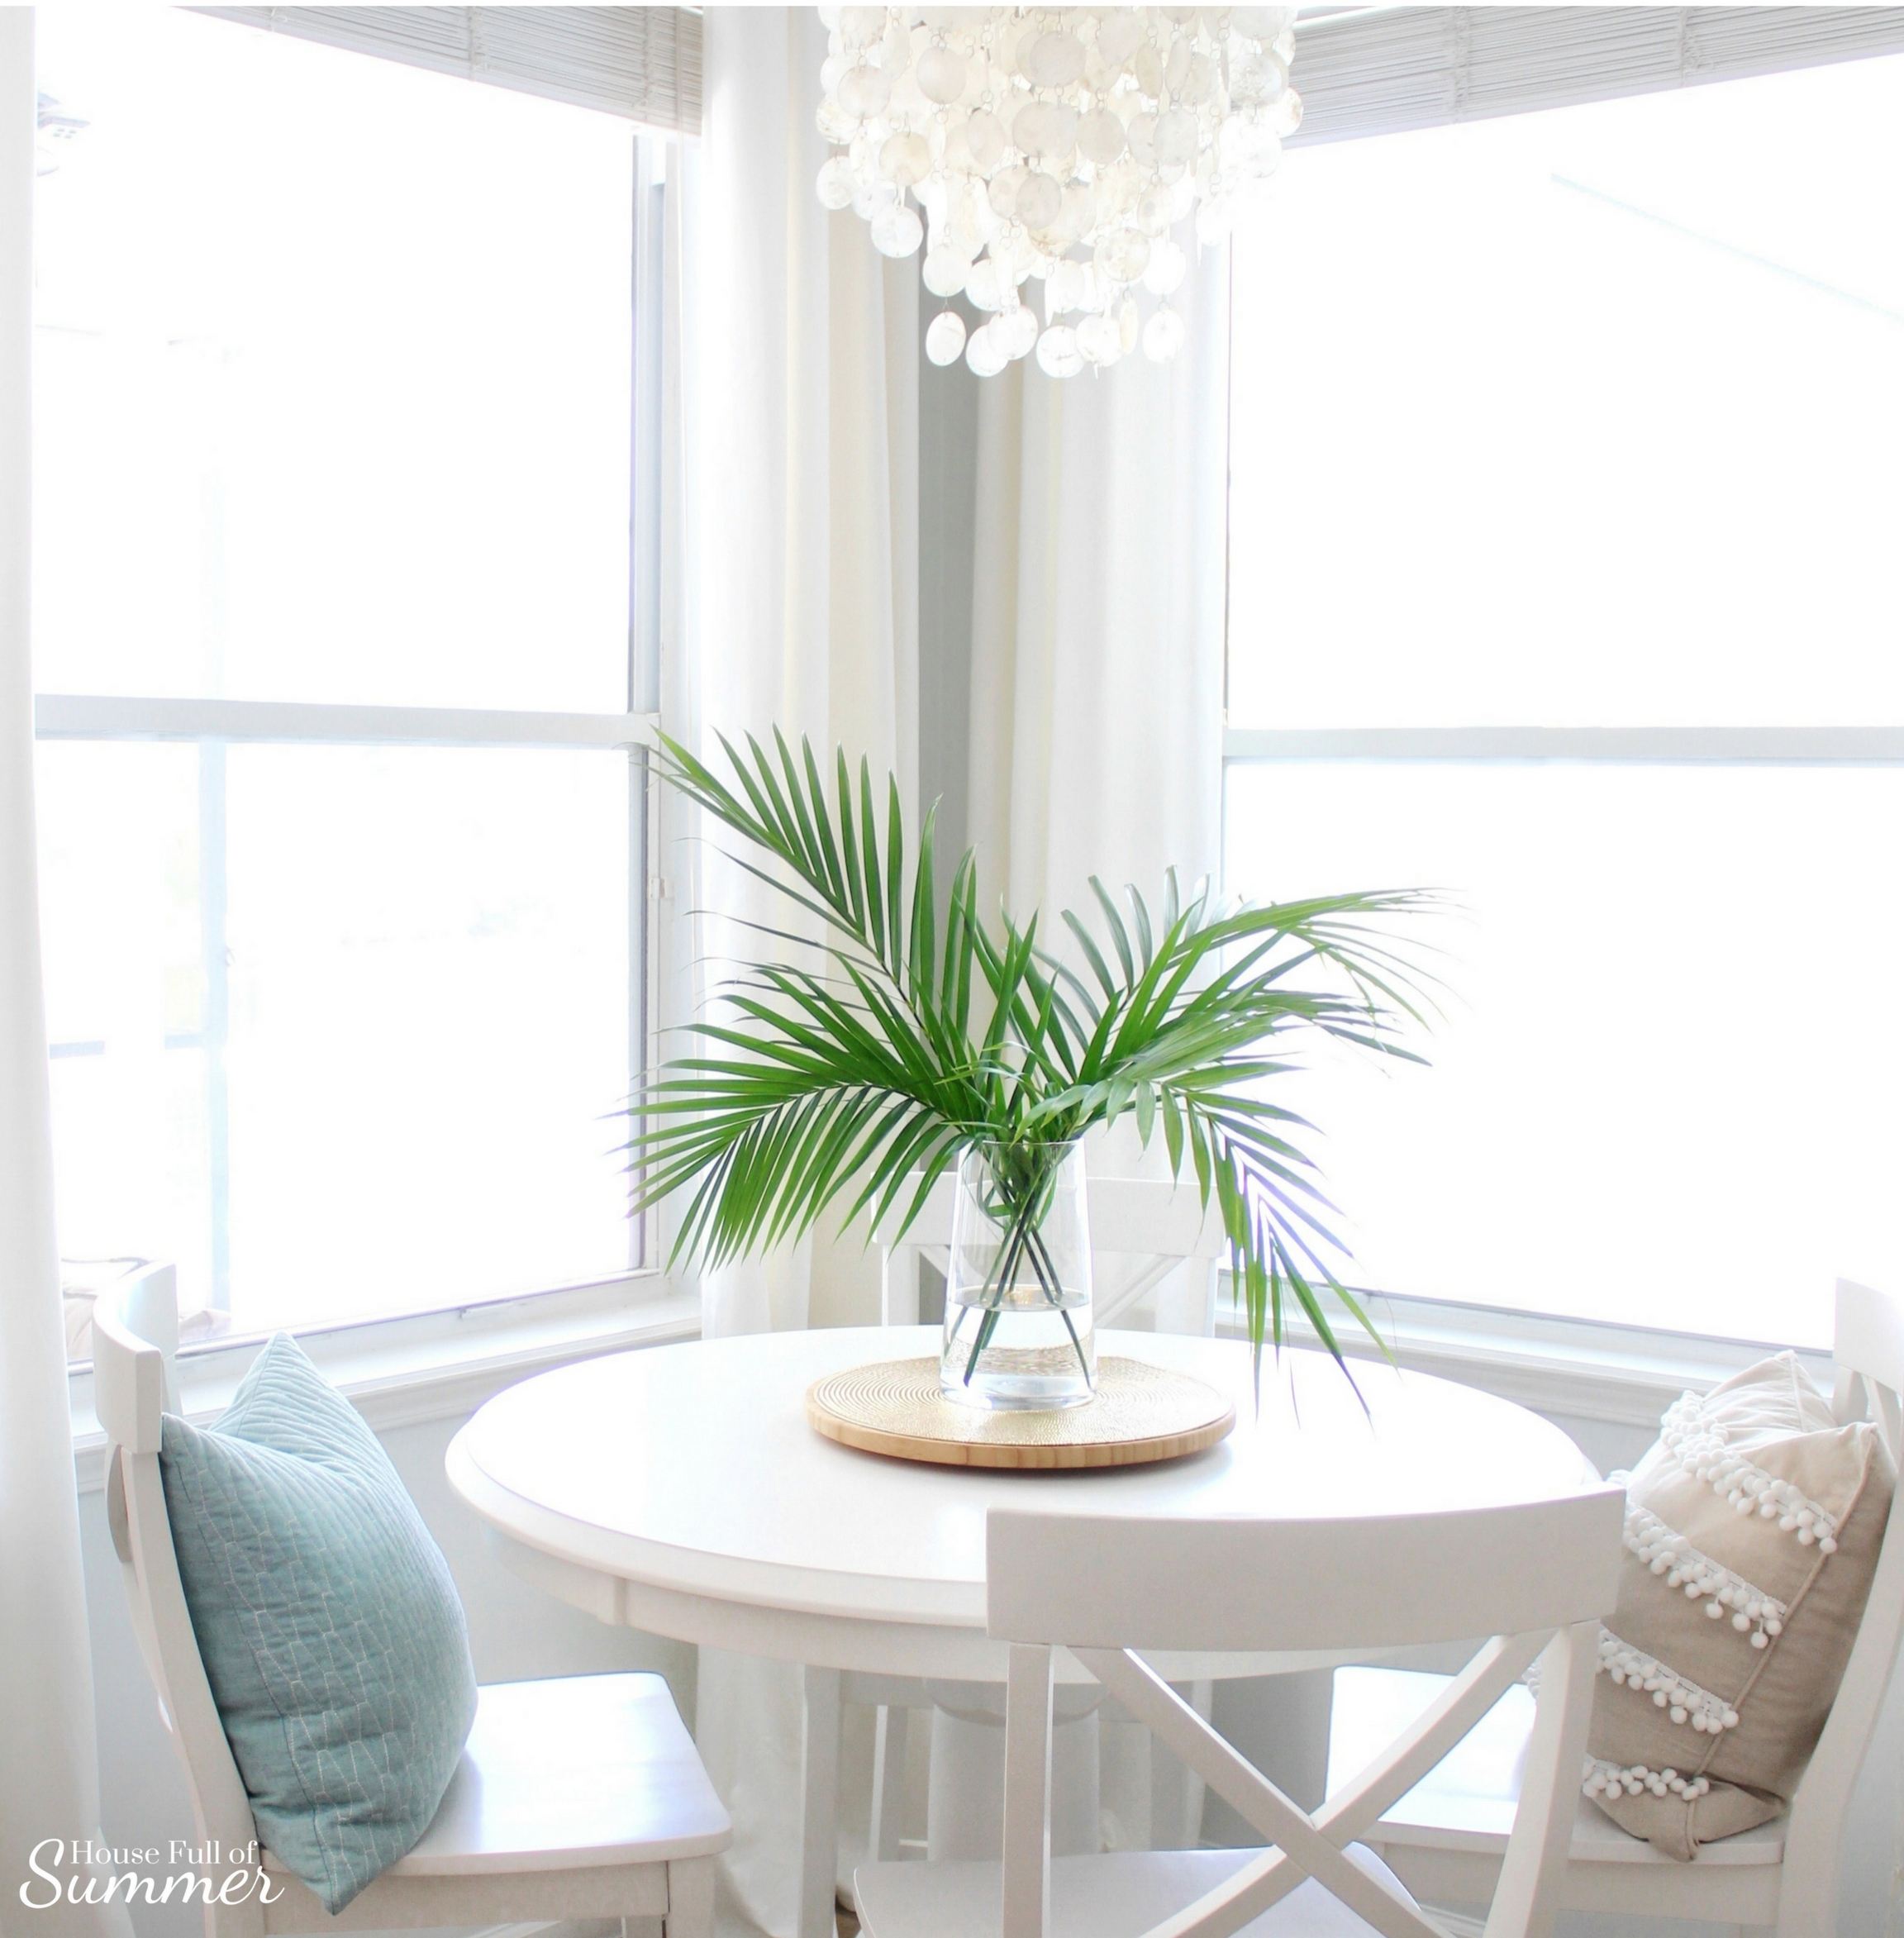 Add New Life to Your Home With This New Year's Resolution | House Full of Summer blog adding greenery to your home, decorating with plants, fronds, trimmings, winter decor, home decor, coastal home interior, capiz chandelier, decor on a budget, spring decor ideas,  hamptons style, white breakfast nook, extra long white curtains, summer decor, fronds